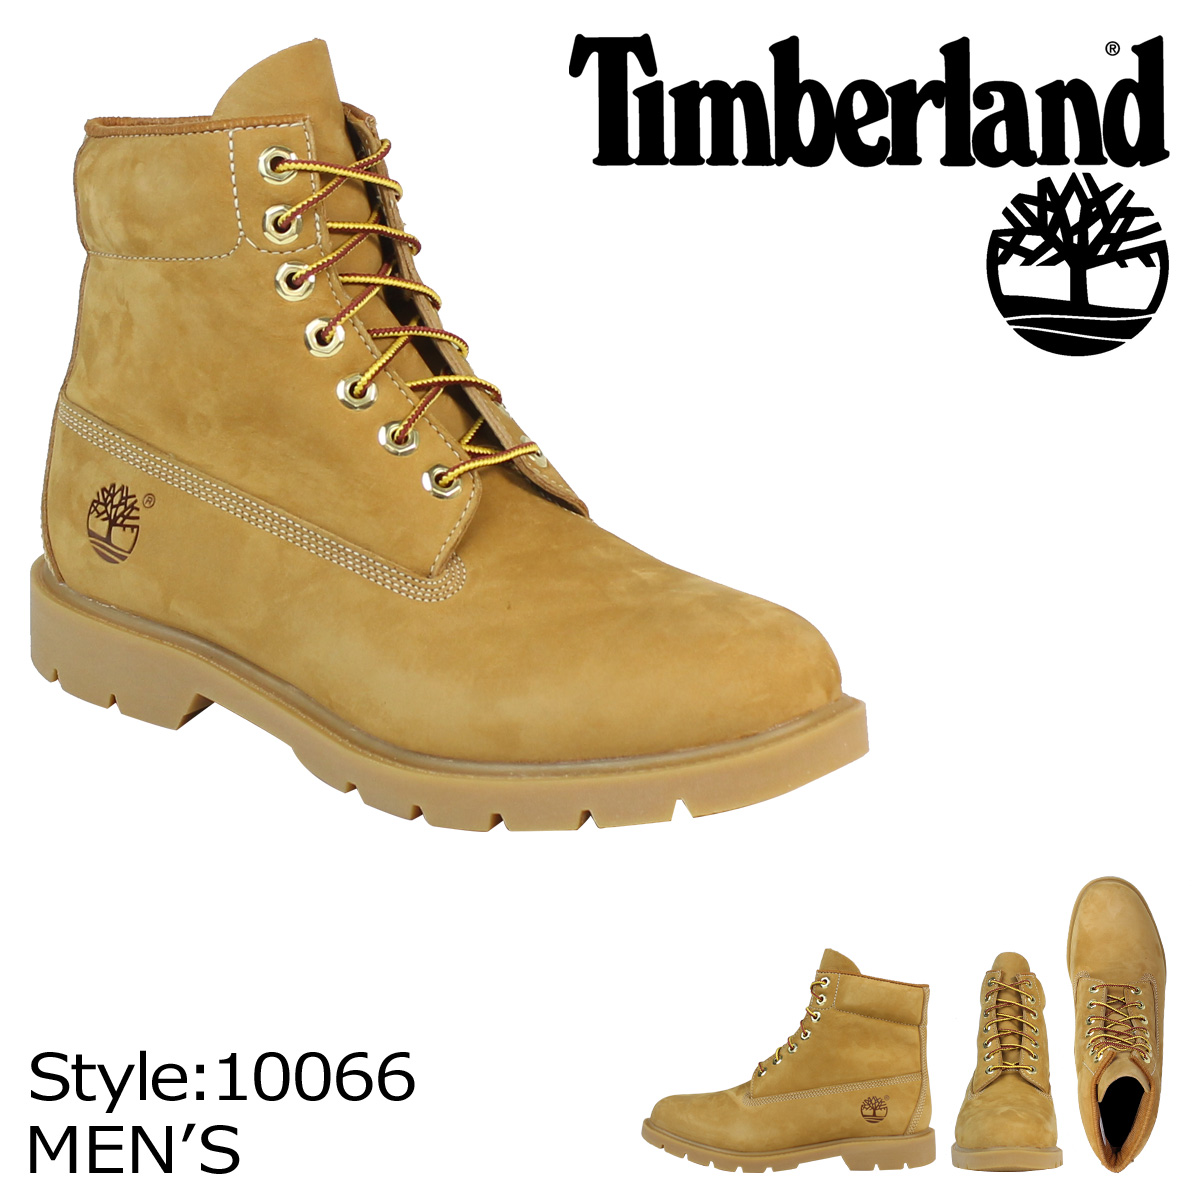 Whats up Sports  Timberland Timberland 6 INCH 6 inch boots BASIC WATERPROOF  BOOT 10066 W wise men s wheat  96e3c1ae8